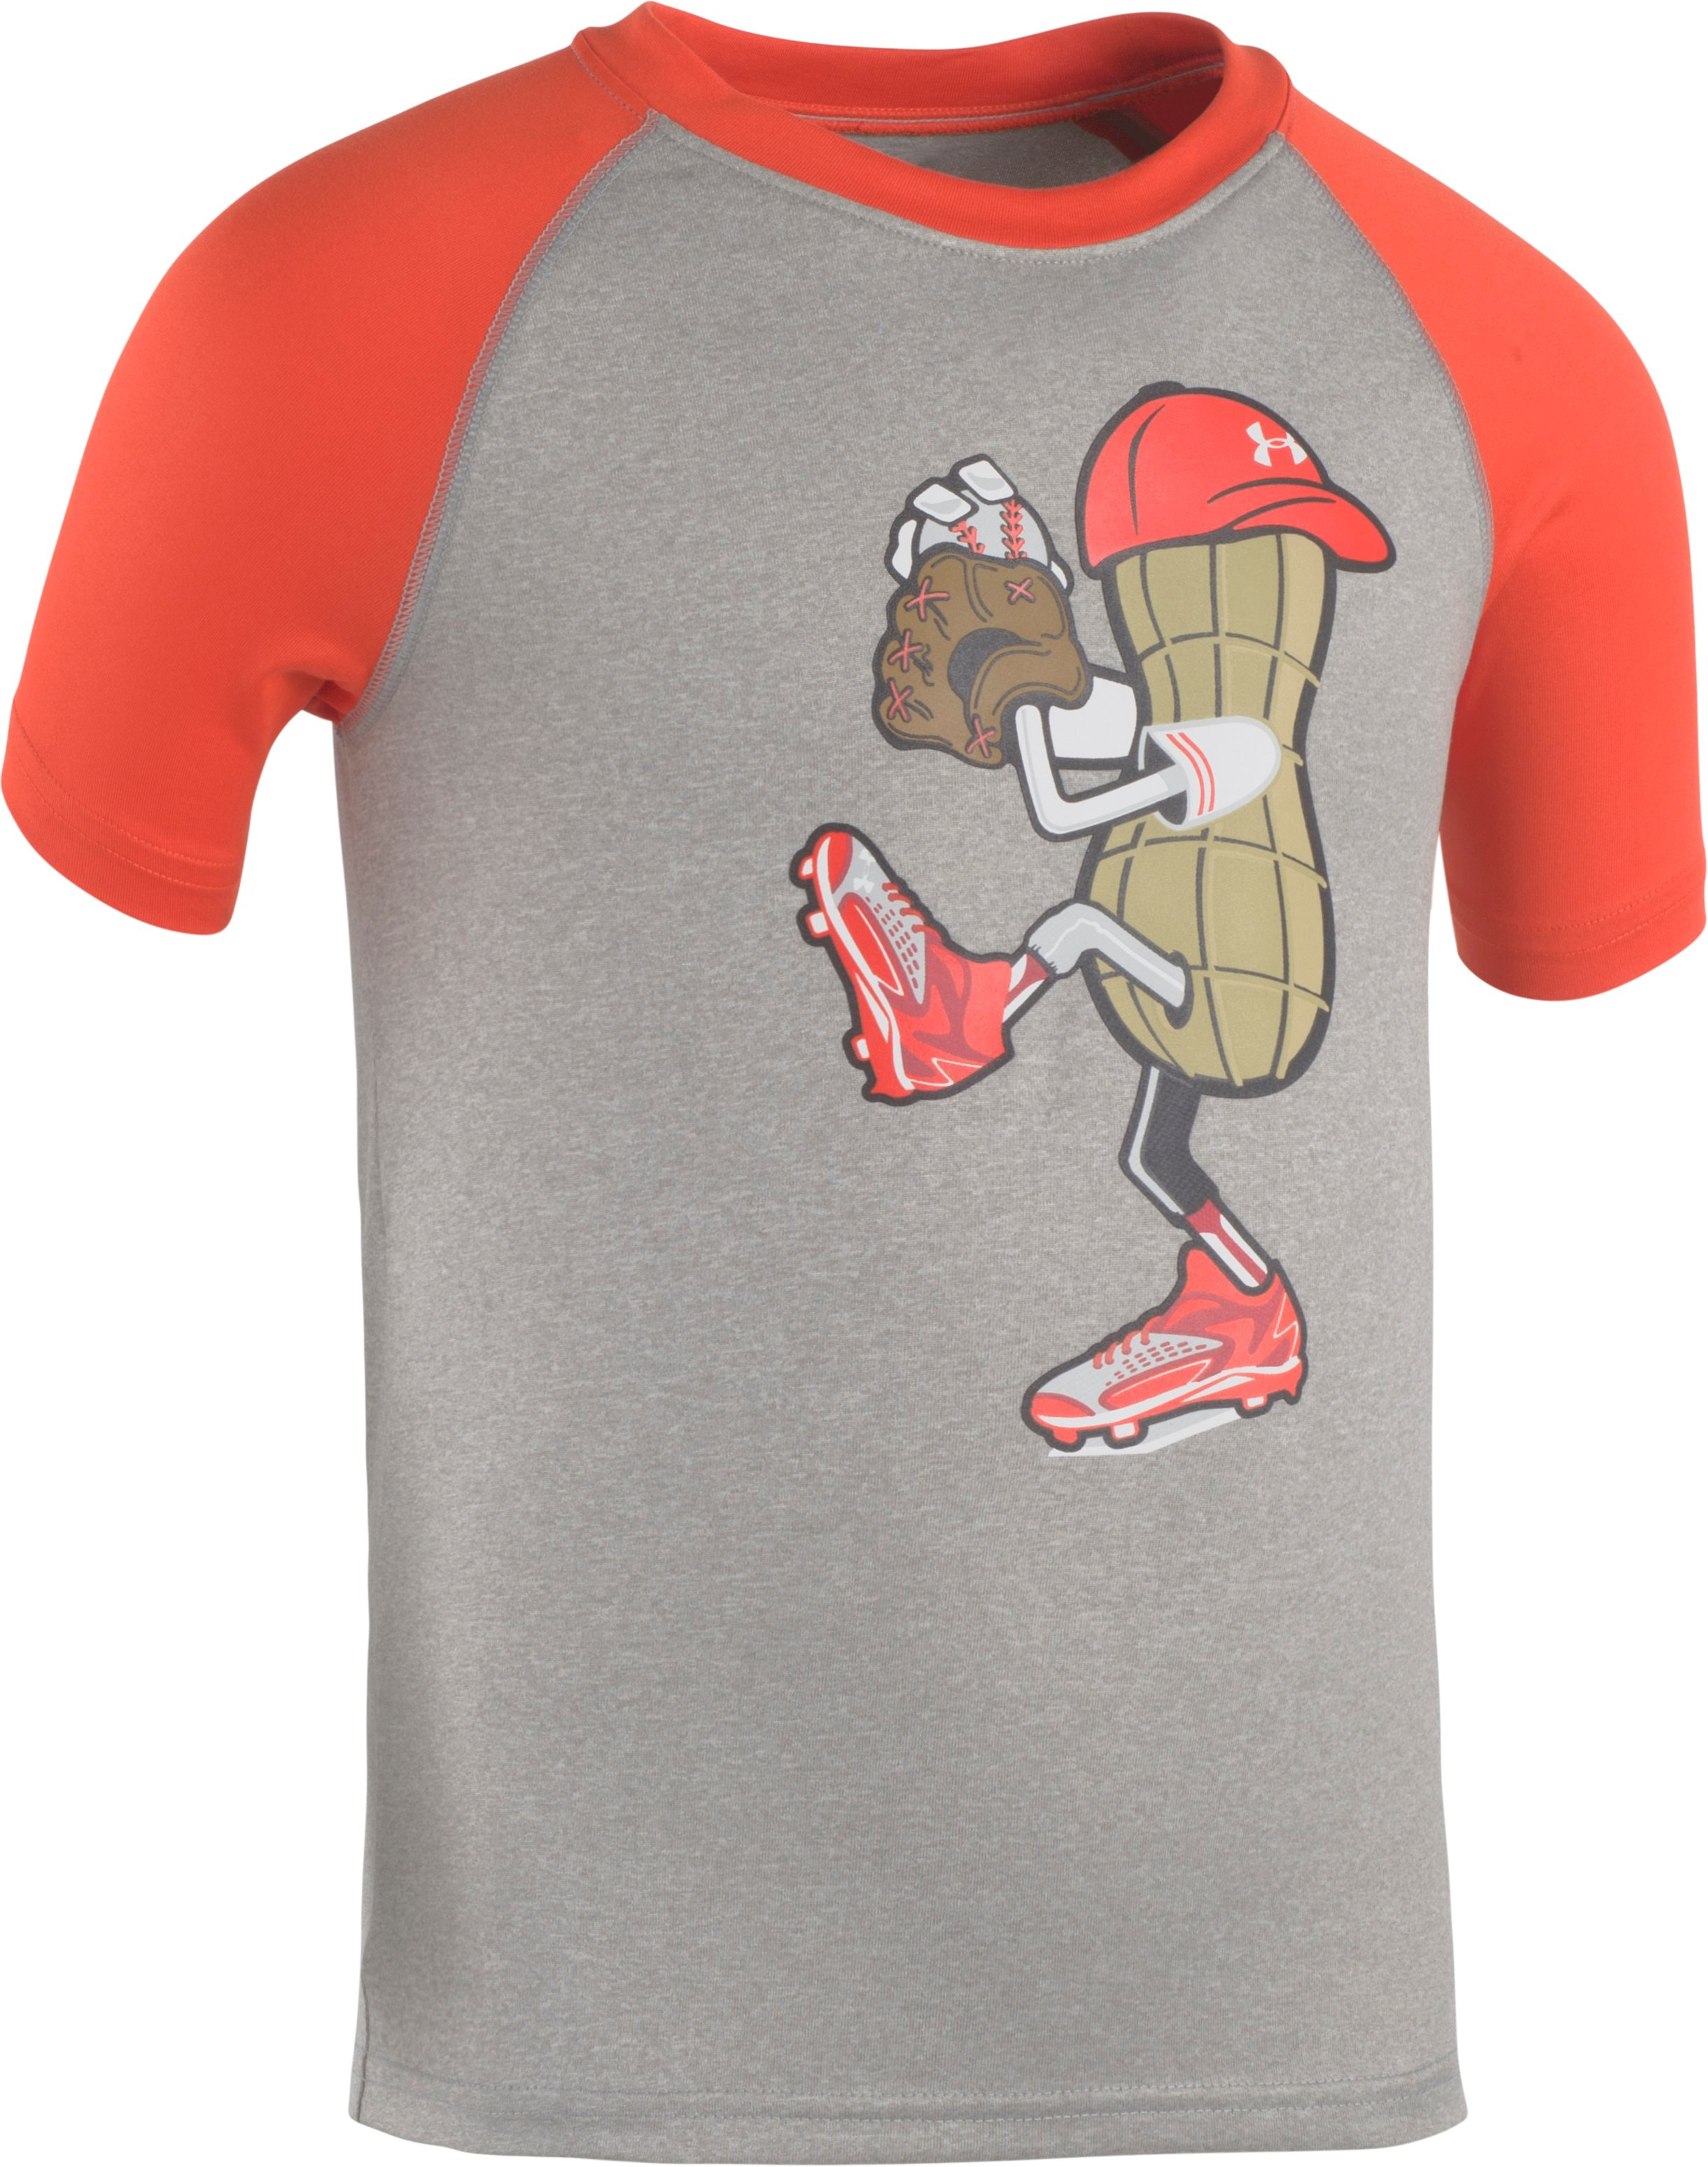 Boys' Toddler UA Peanut Pitcher Short Sleeve Shirt, True Gray Heather, Laydown